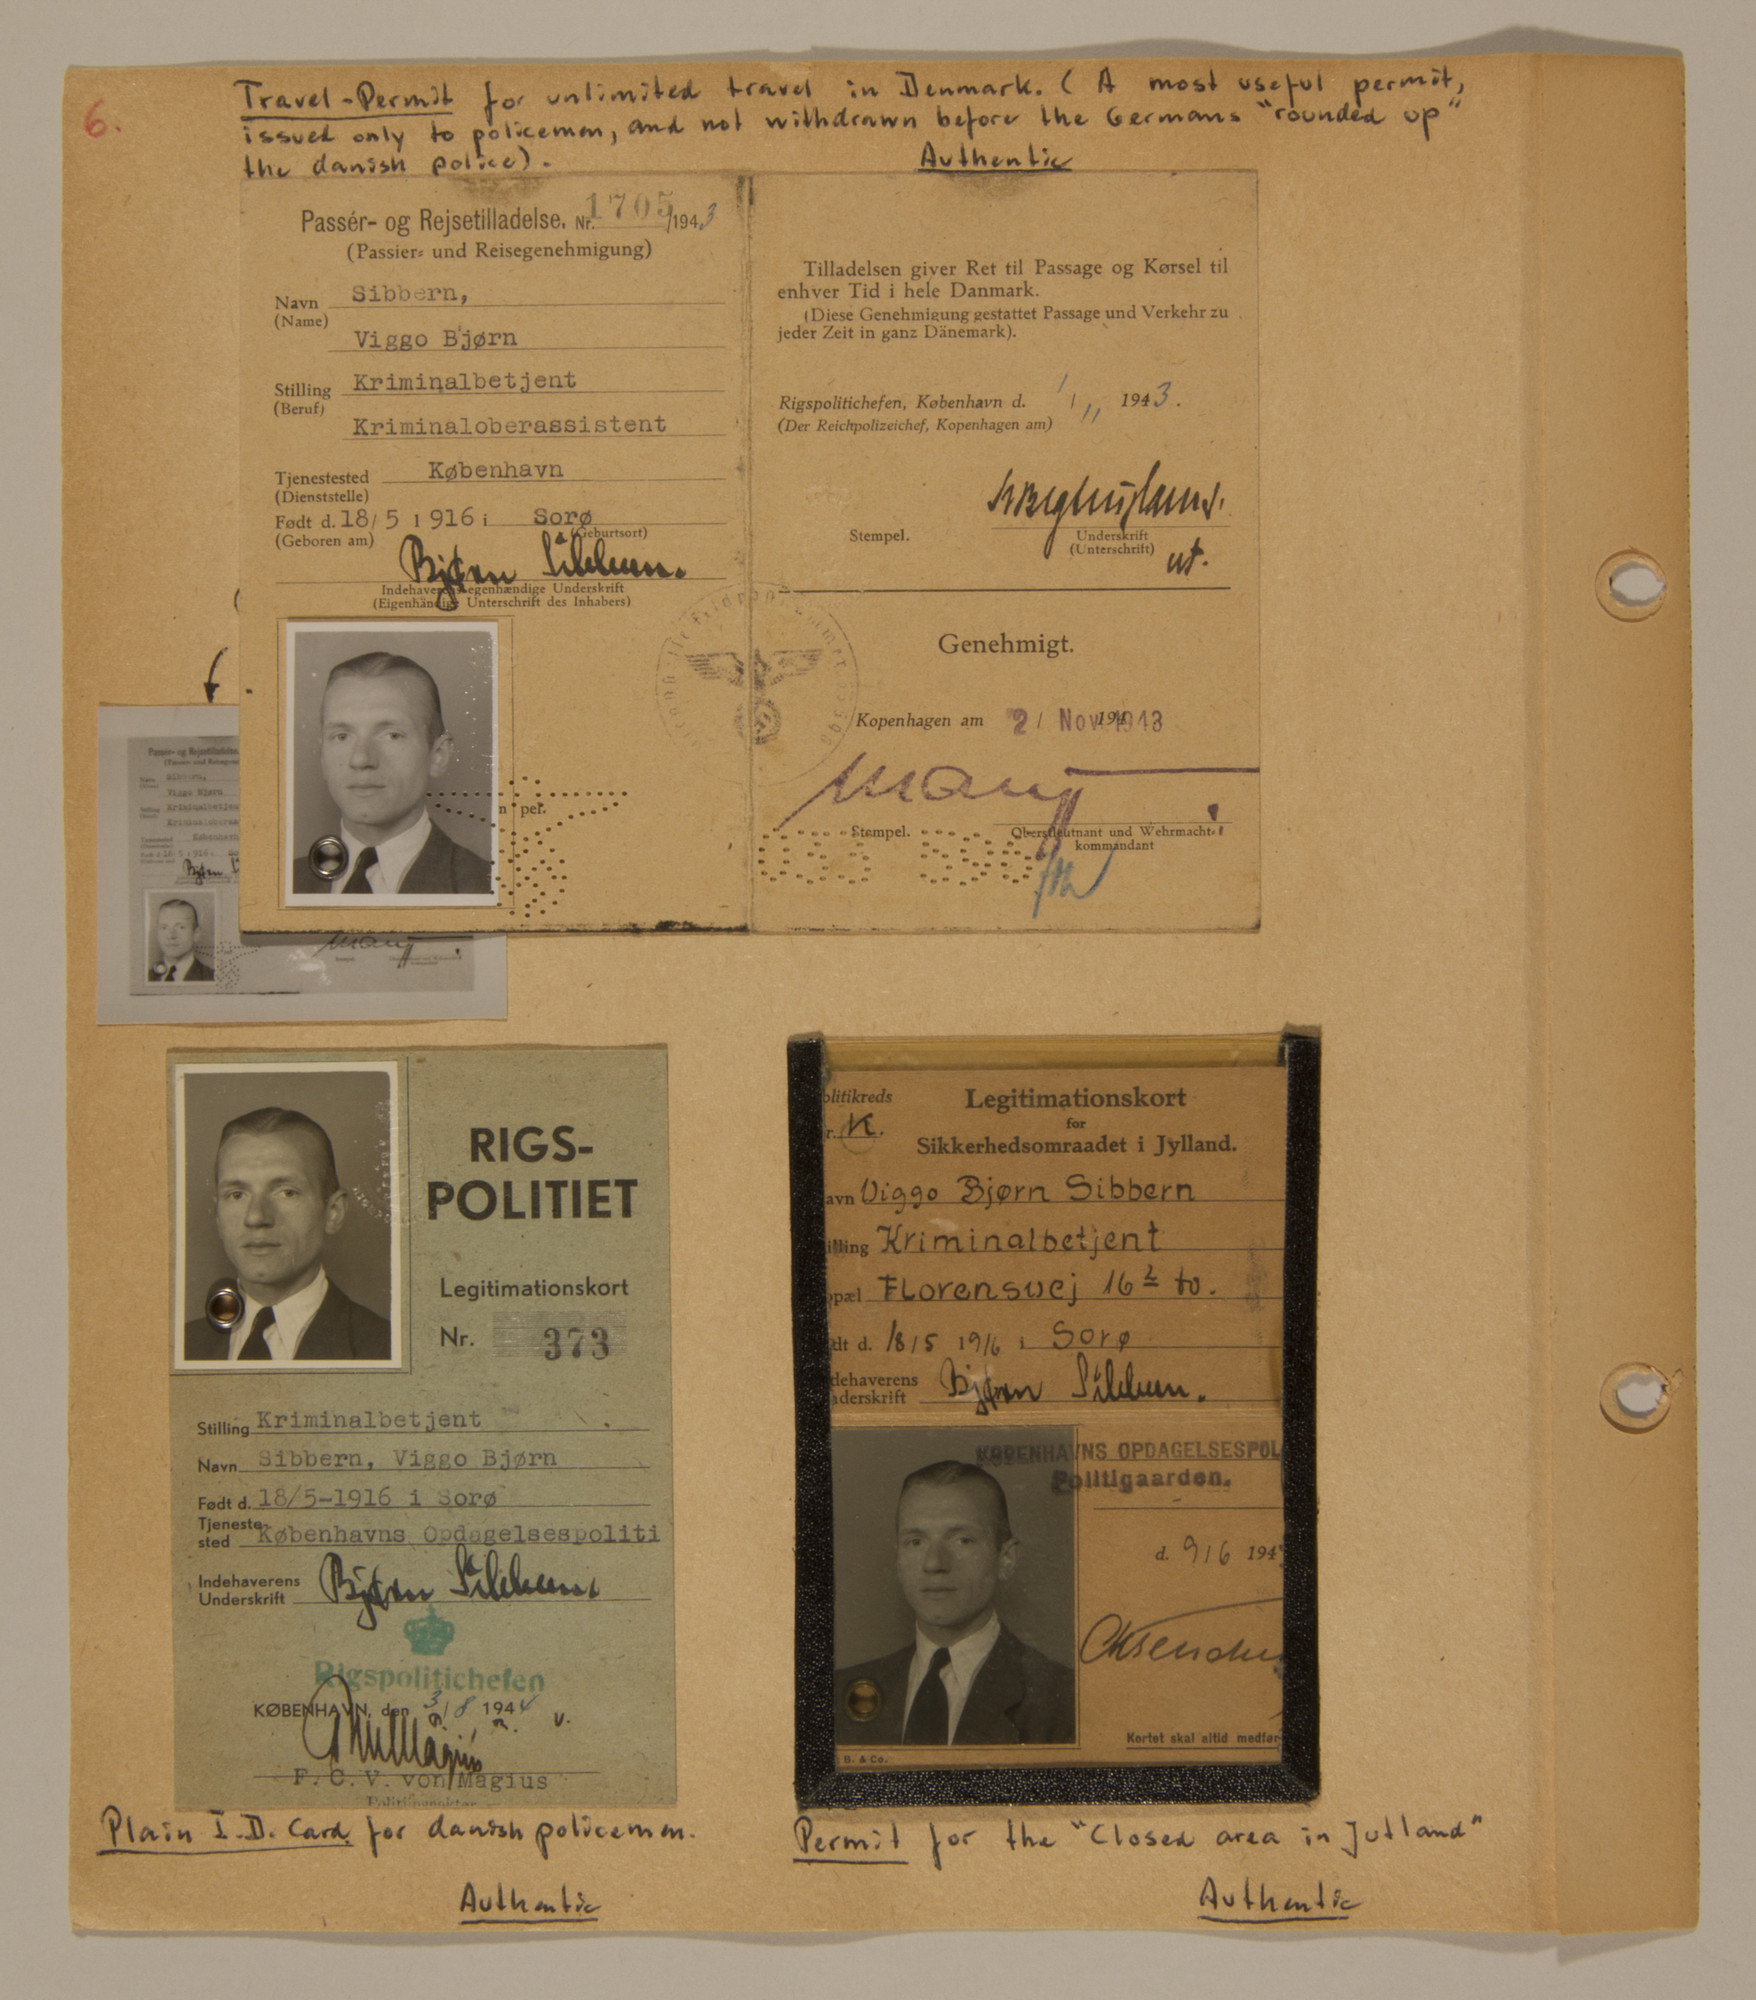 Page from volume three of a set of scrapbooks compiled by Bjorn Sibbern, a Danish policeman and resistance member, documenting the German occupation of Denmark.  This page contains Bjorn Sibbern's authentic identification cards.